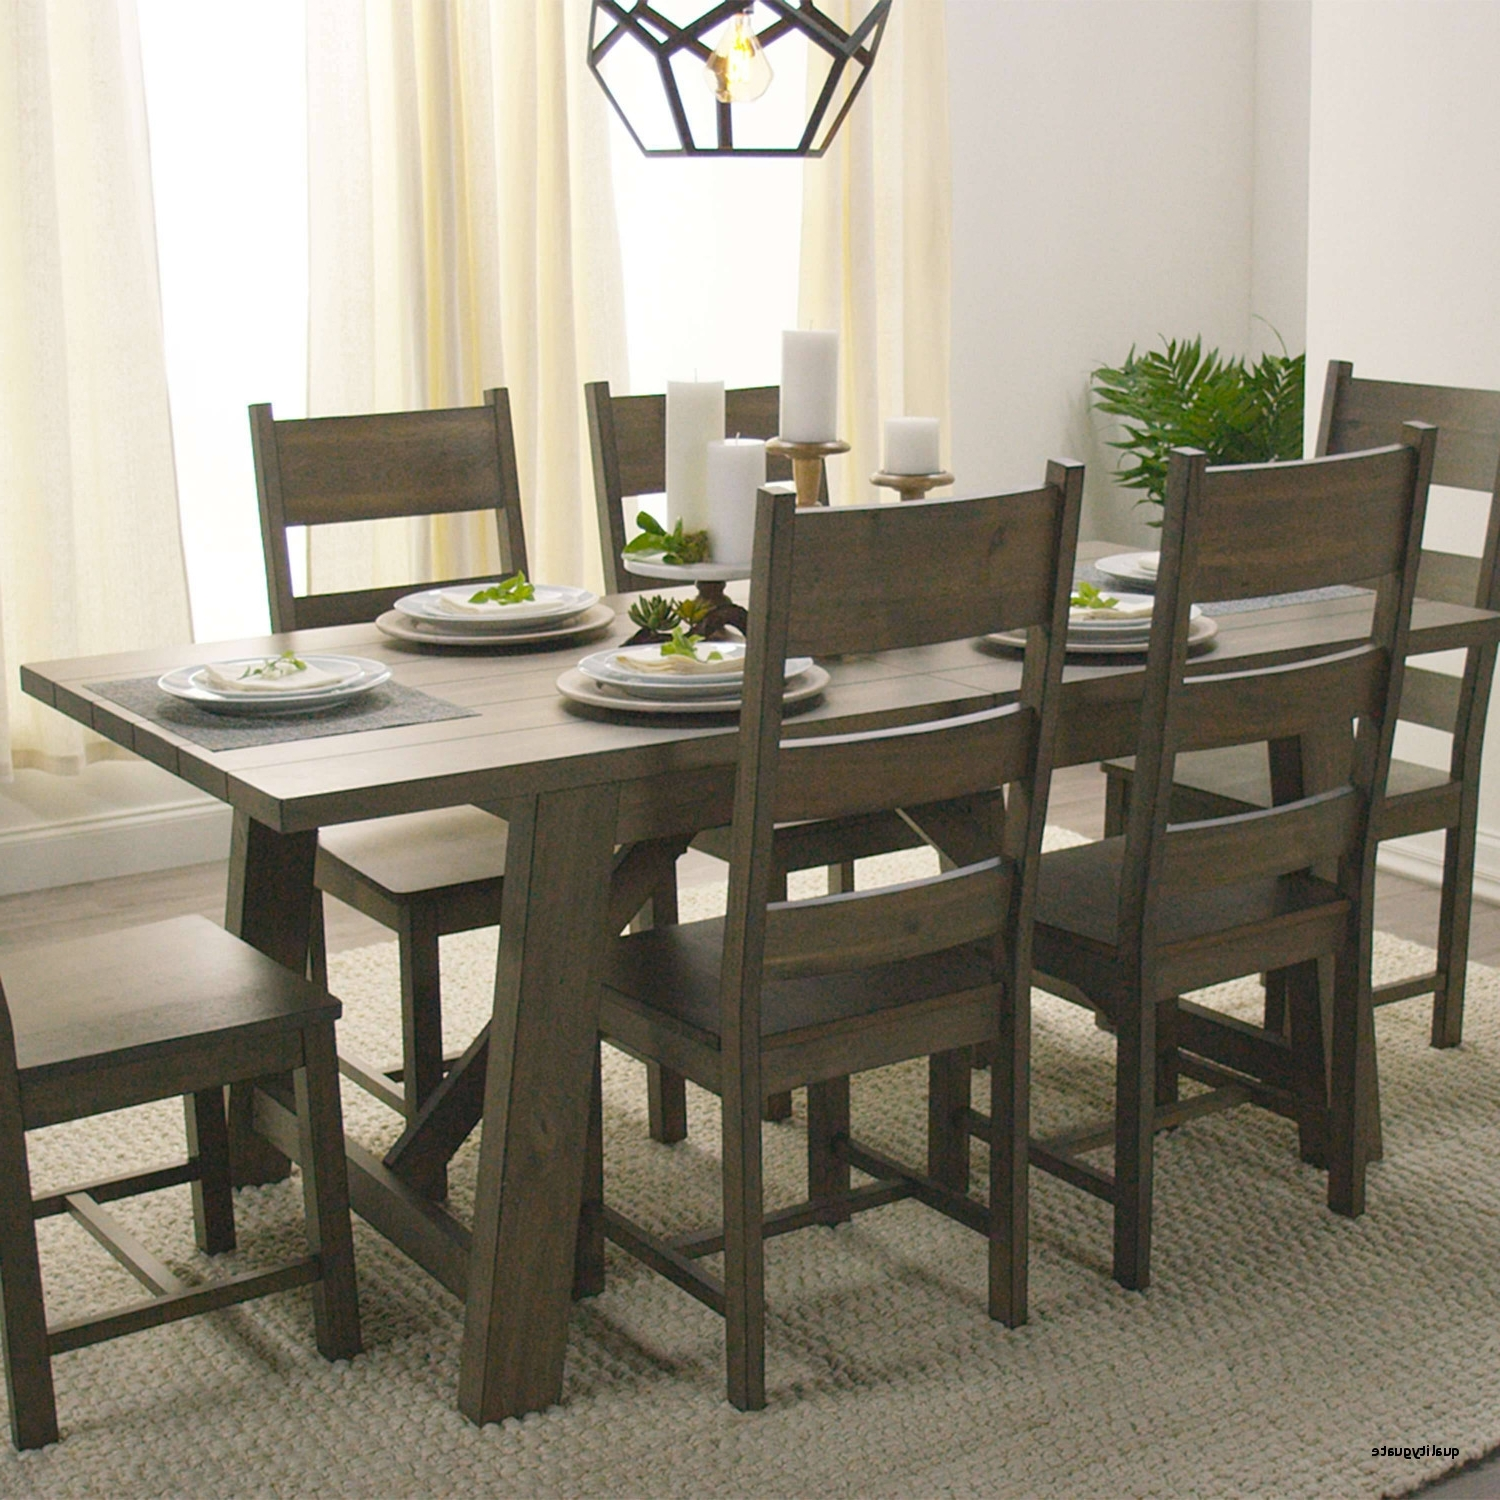 2017 Mallard Extension Dining Tables In Round Extending Dining Table Contemporary Round Country Dining Table (View 22 of 25)